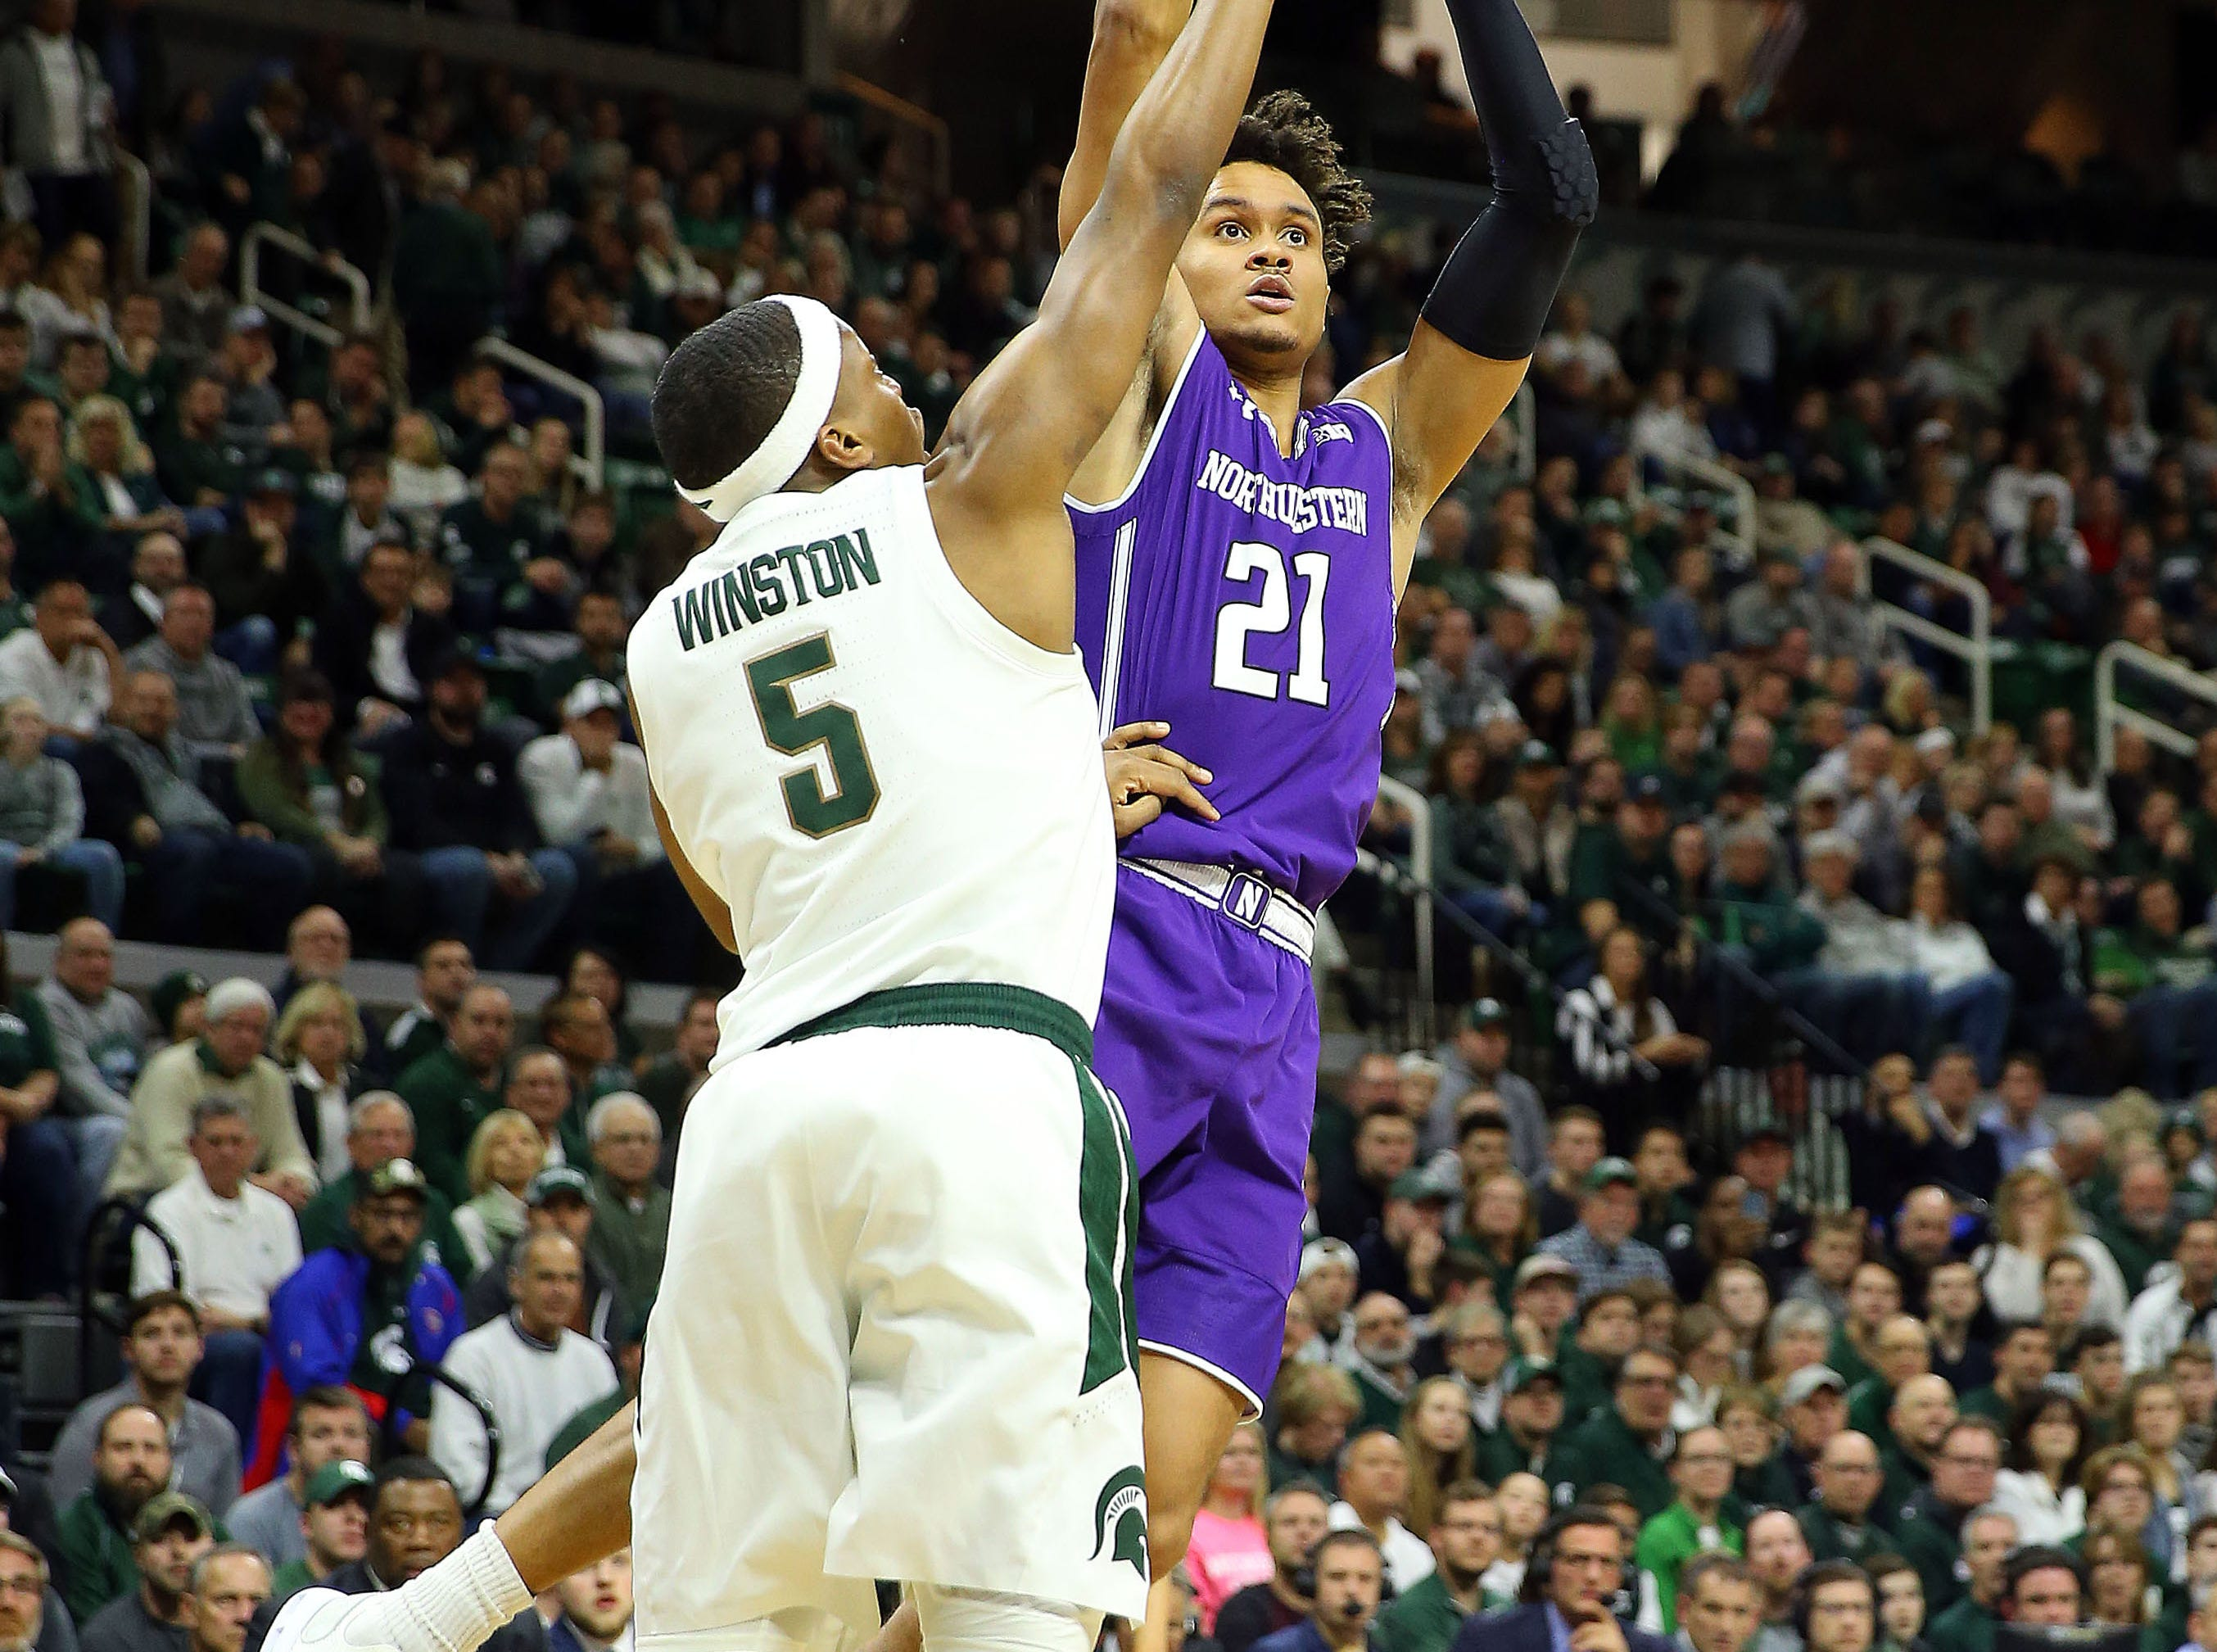 Jan 2, 2019; East Lansing, MI, USA; Northwestern Wildcats forward A.J. Turner (21) is defended by Michigan State Spartans guard Cassius Winston (5) during the first half of a game at the Breslin Center. Mandatory Credit: Mike Carter-USA TODAY Sports